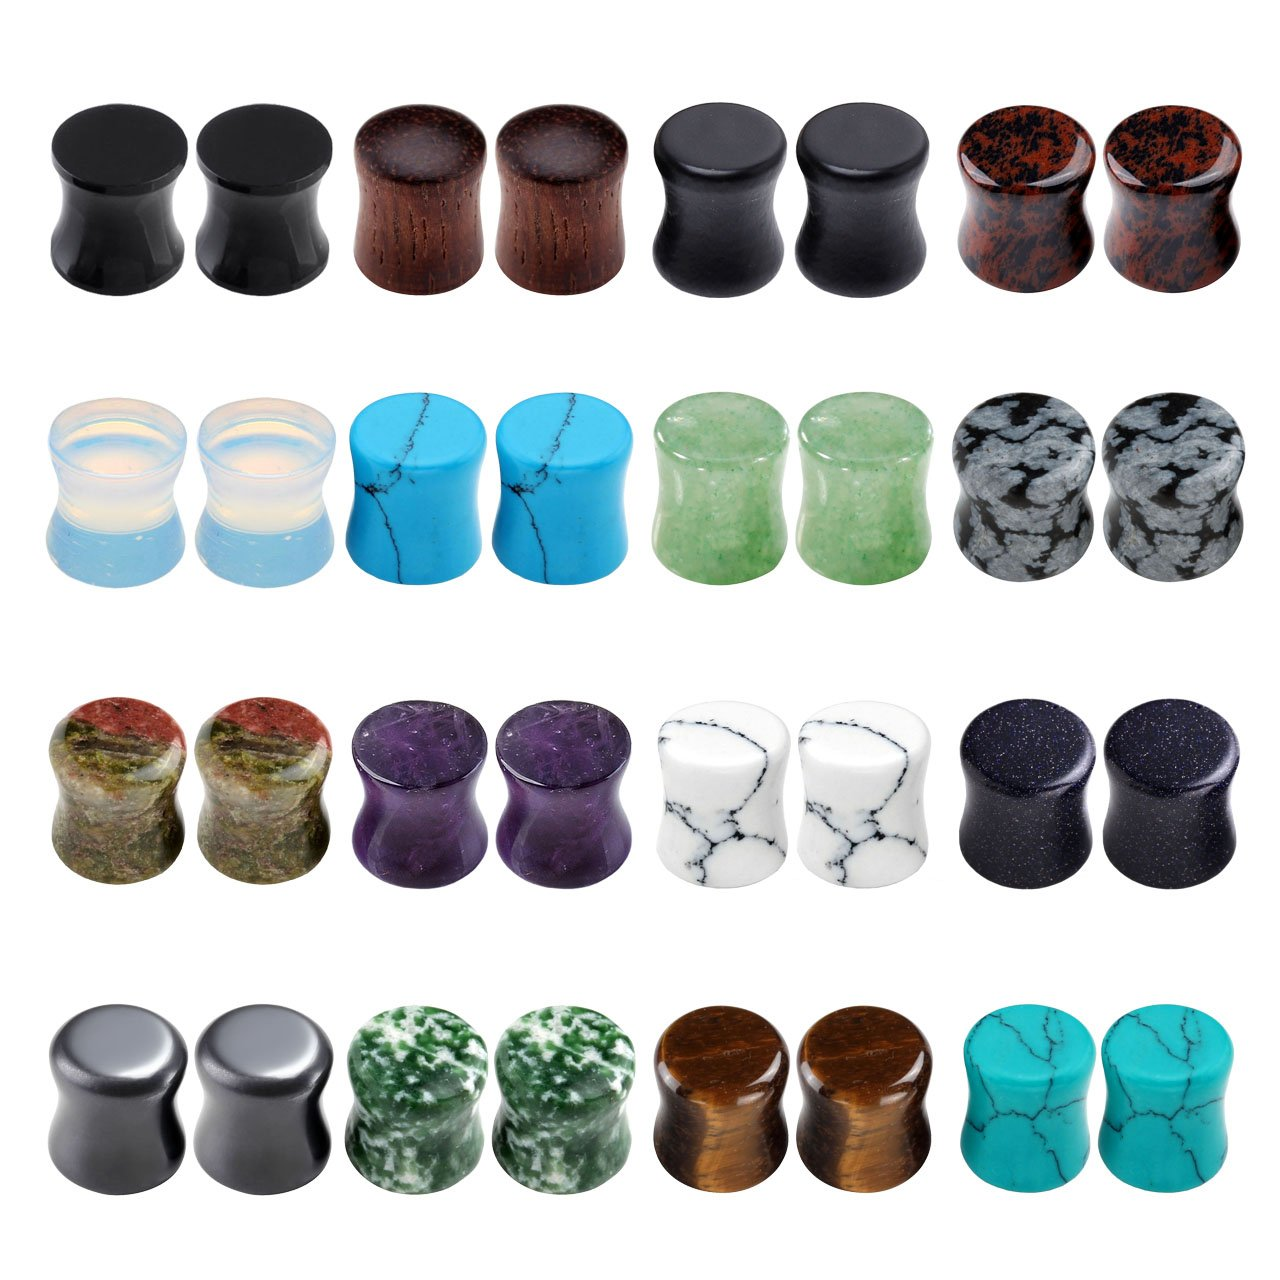 PiercingJ Acrylic Wood Mixed Stone Plugs 16 Pairs/32 Pieces Set Ear Plugs Ear Tunnels Ear Gauges Double Flared Ear Expander Stretcher Set by PiercingJ